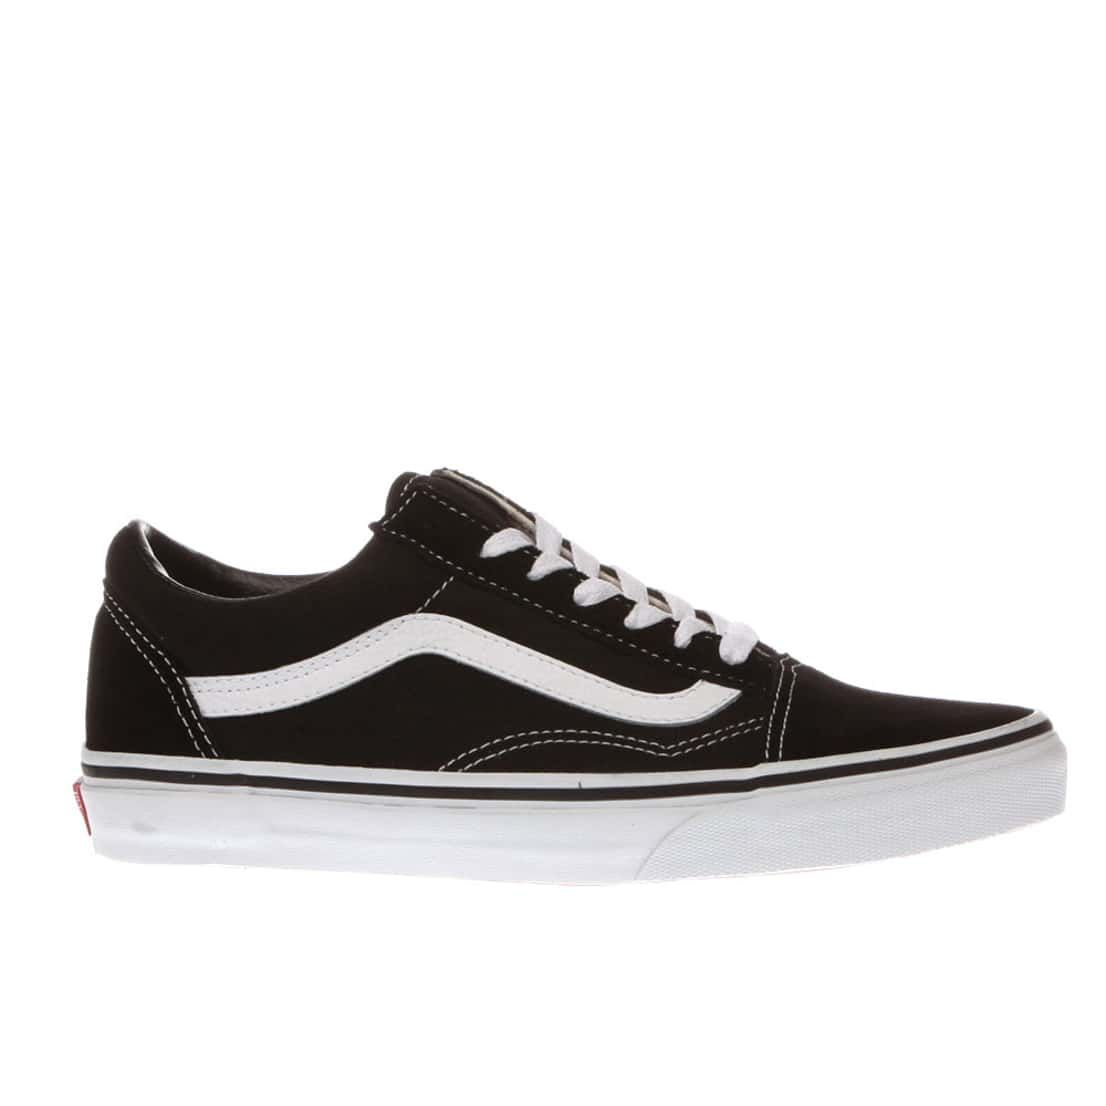 womens black & white vans old skool trainers | schuh